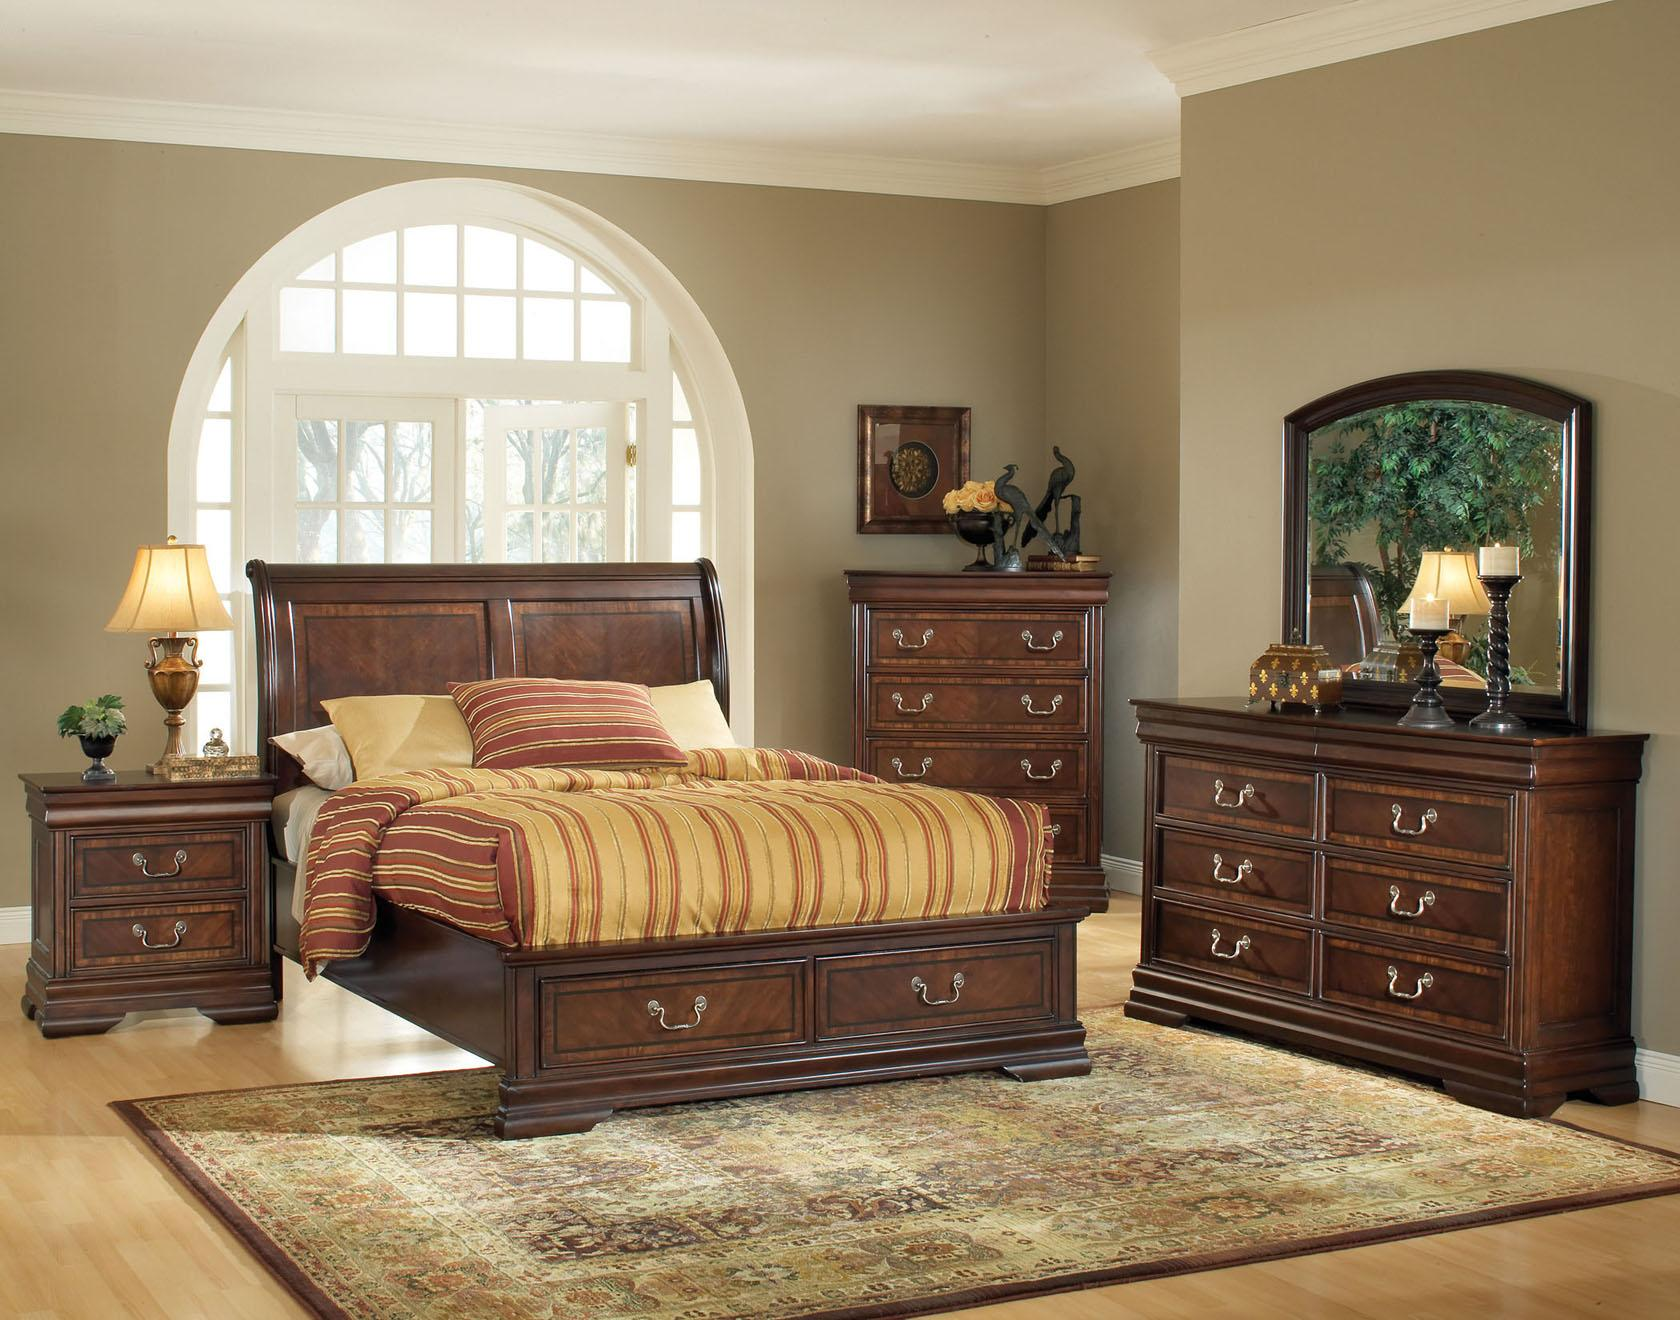 acme furniture bedroom sets. Acme Furniture Hennessy Traditional Queen Low Profile Storage Bed with Two  Drawers Rooms for Less Platform Beds